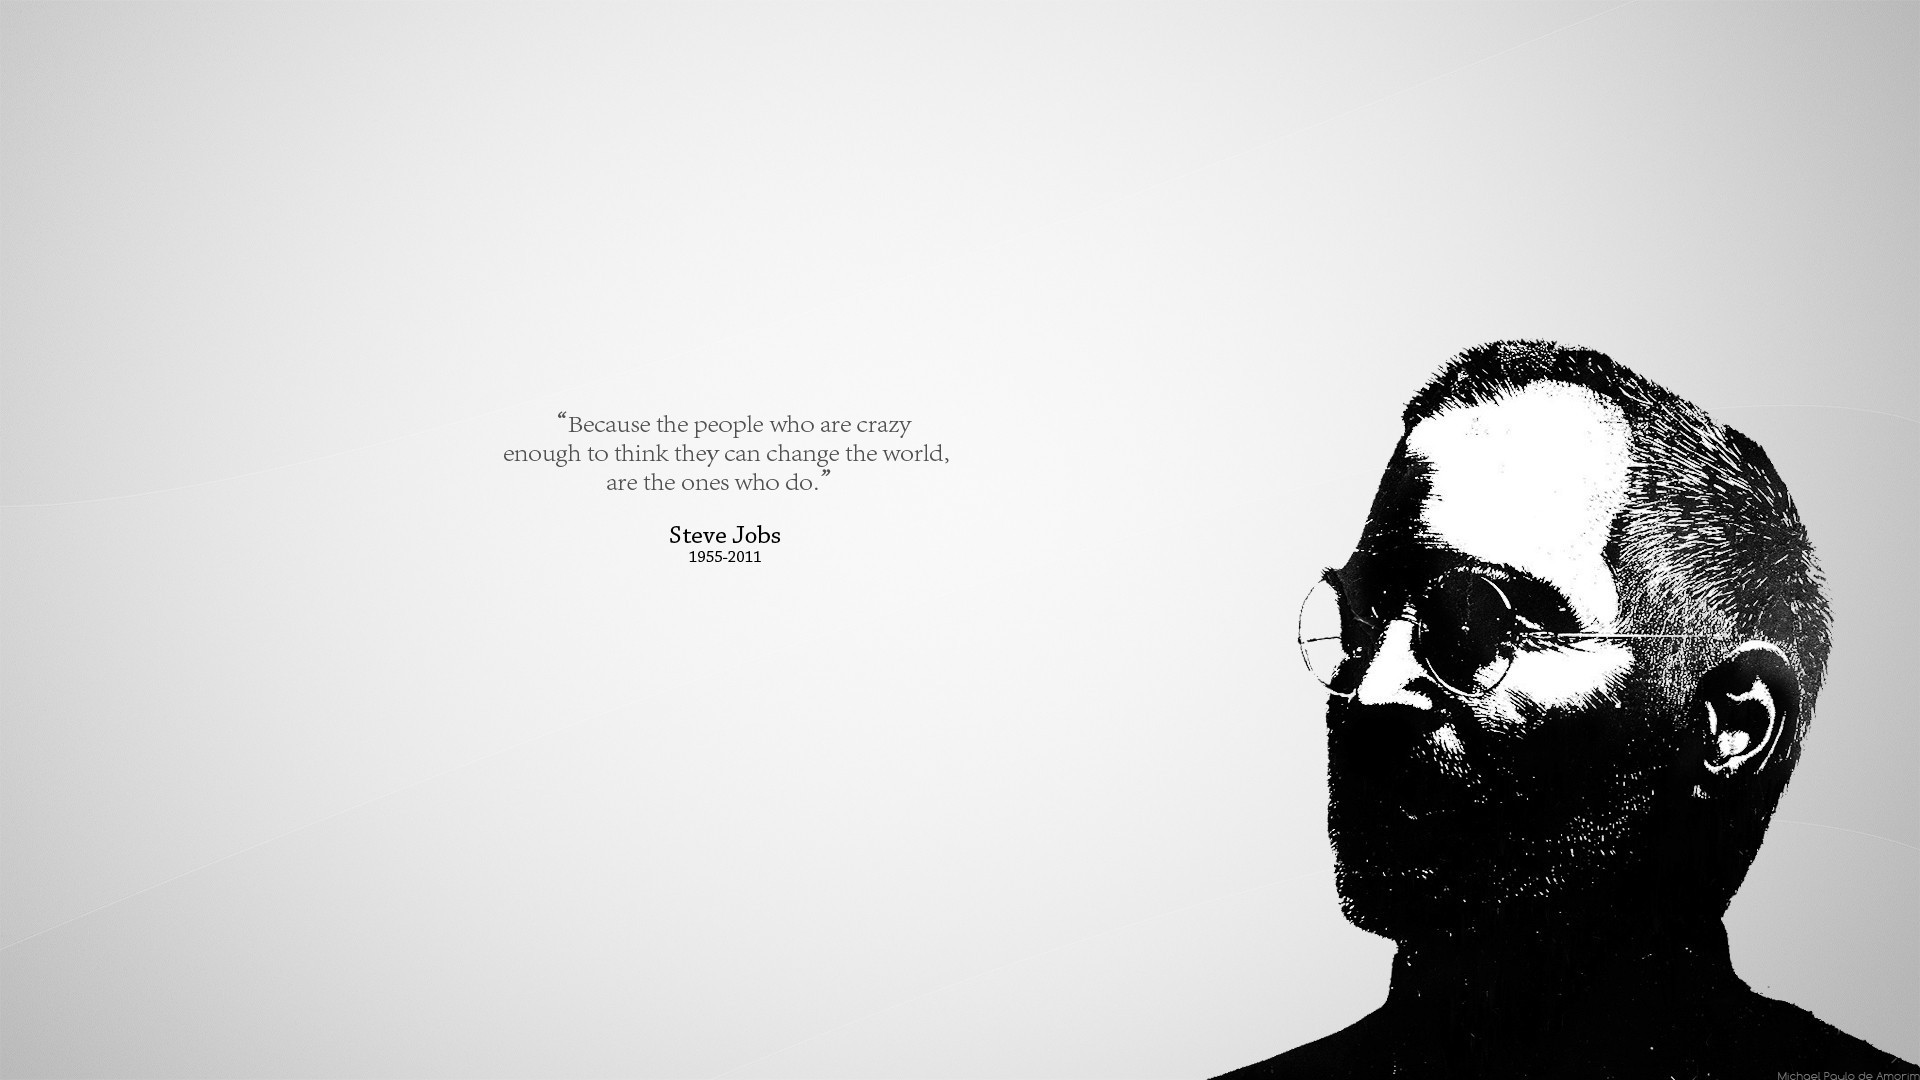 1920x1080, Steve Jobs, Quote, Simple Background Wallpapers - Steve Jobs Minimalist Quote - HD Wallpaper